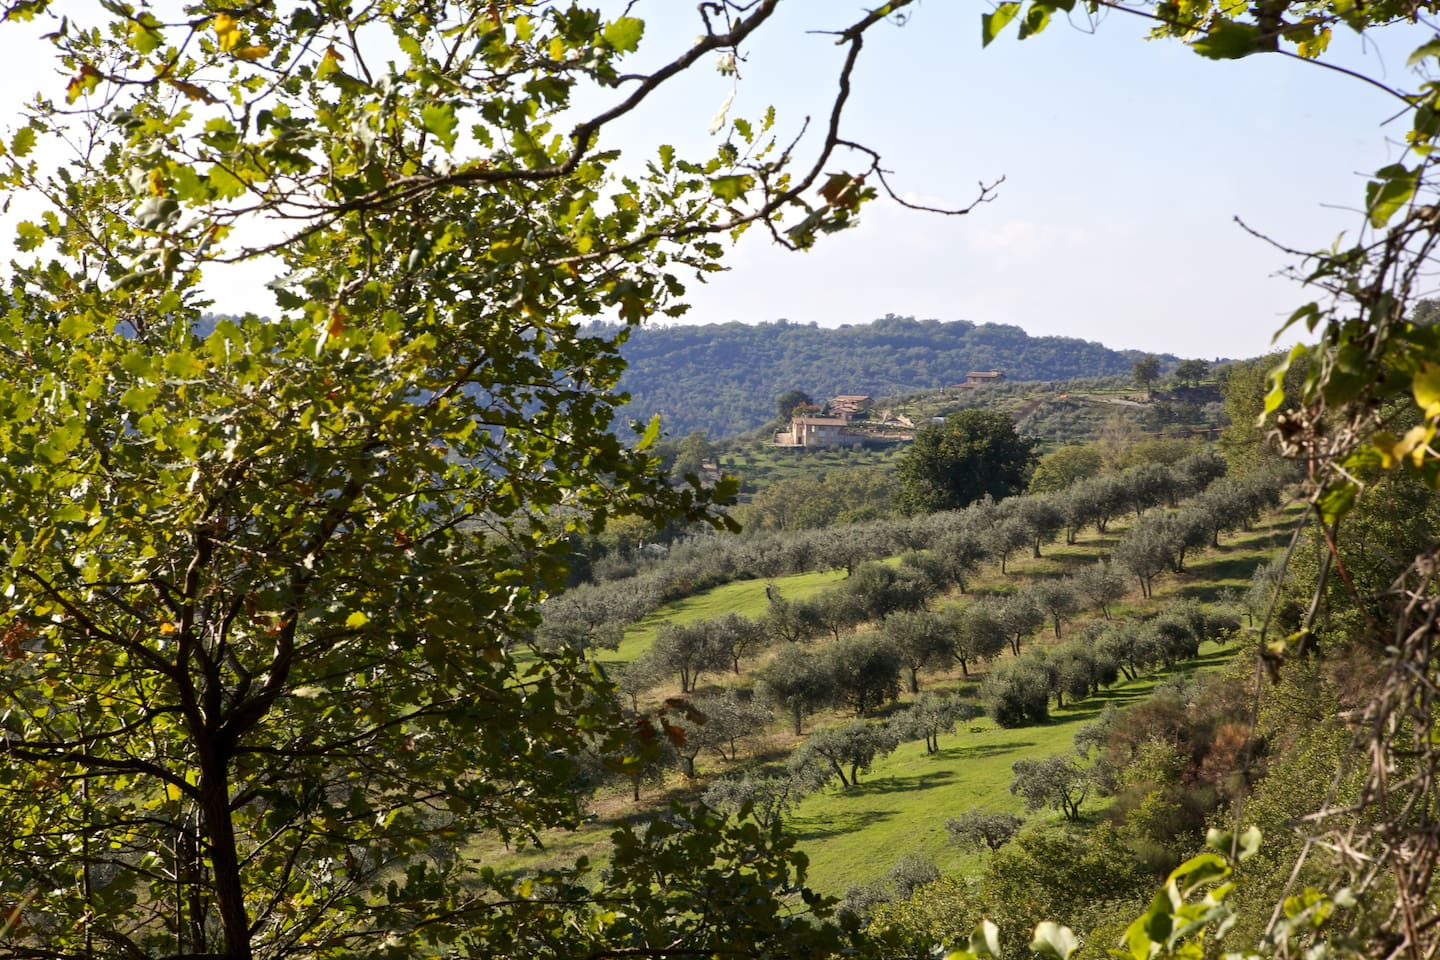 Dominating position, at the top of the hill, with fields of olive trees around.